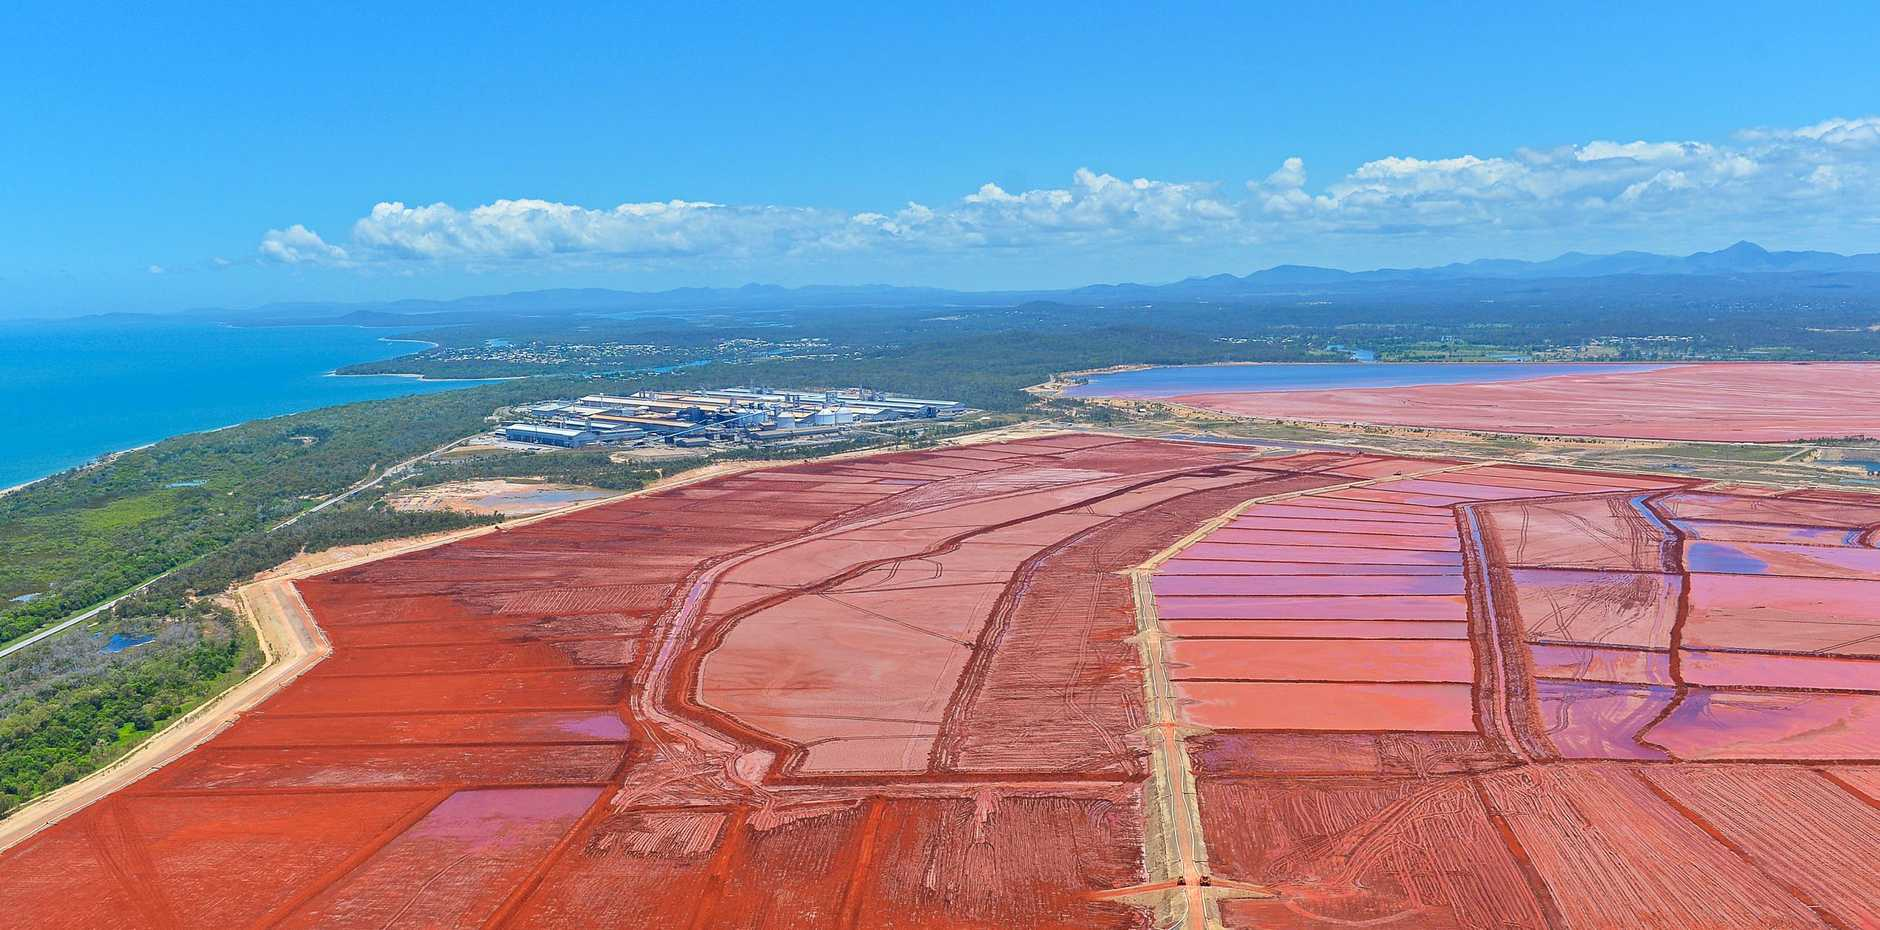 RED MUD: QAL's red mud has been stored at the 1,000 hectare Residue Disposal Area at Boyne Island since operations began in 1967.